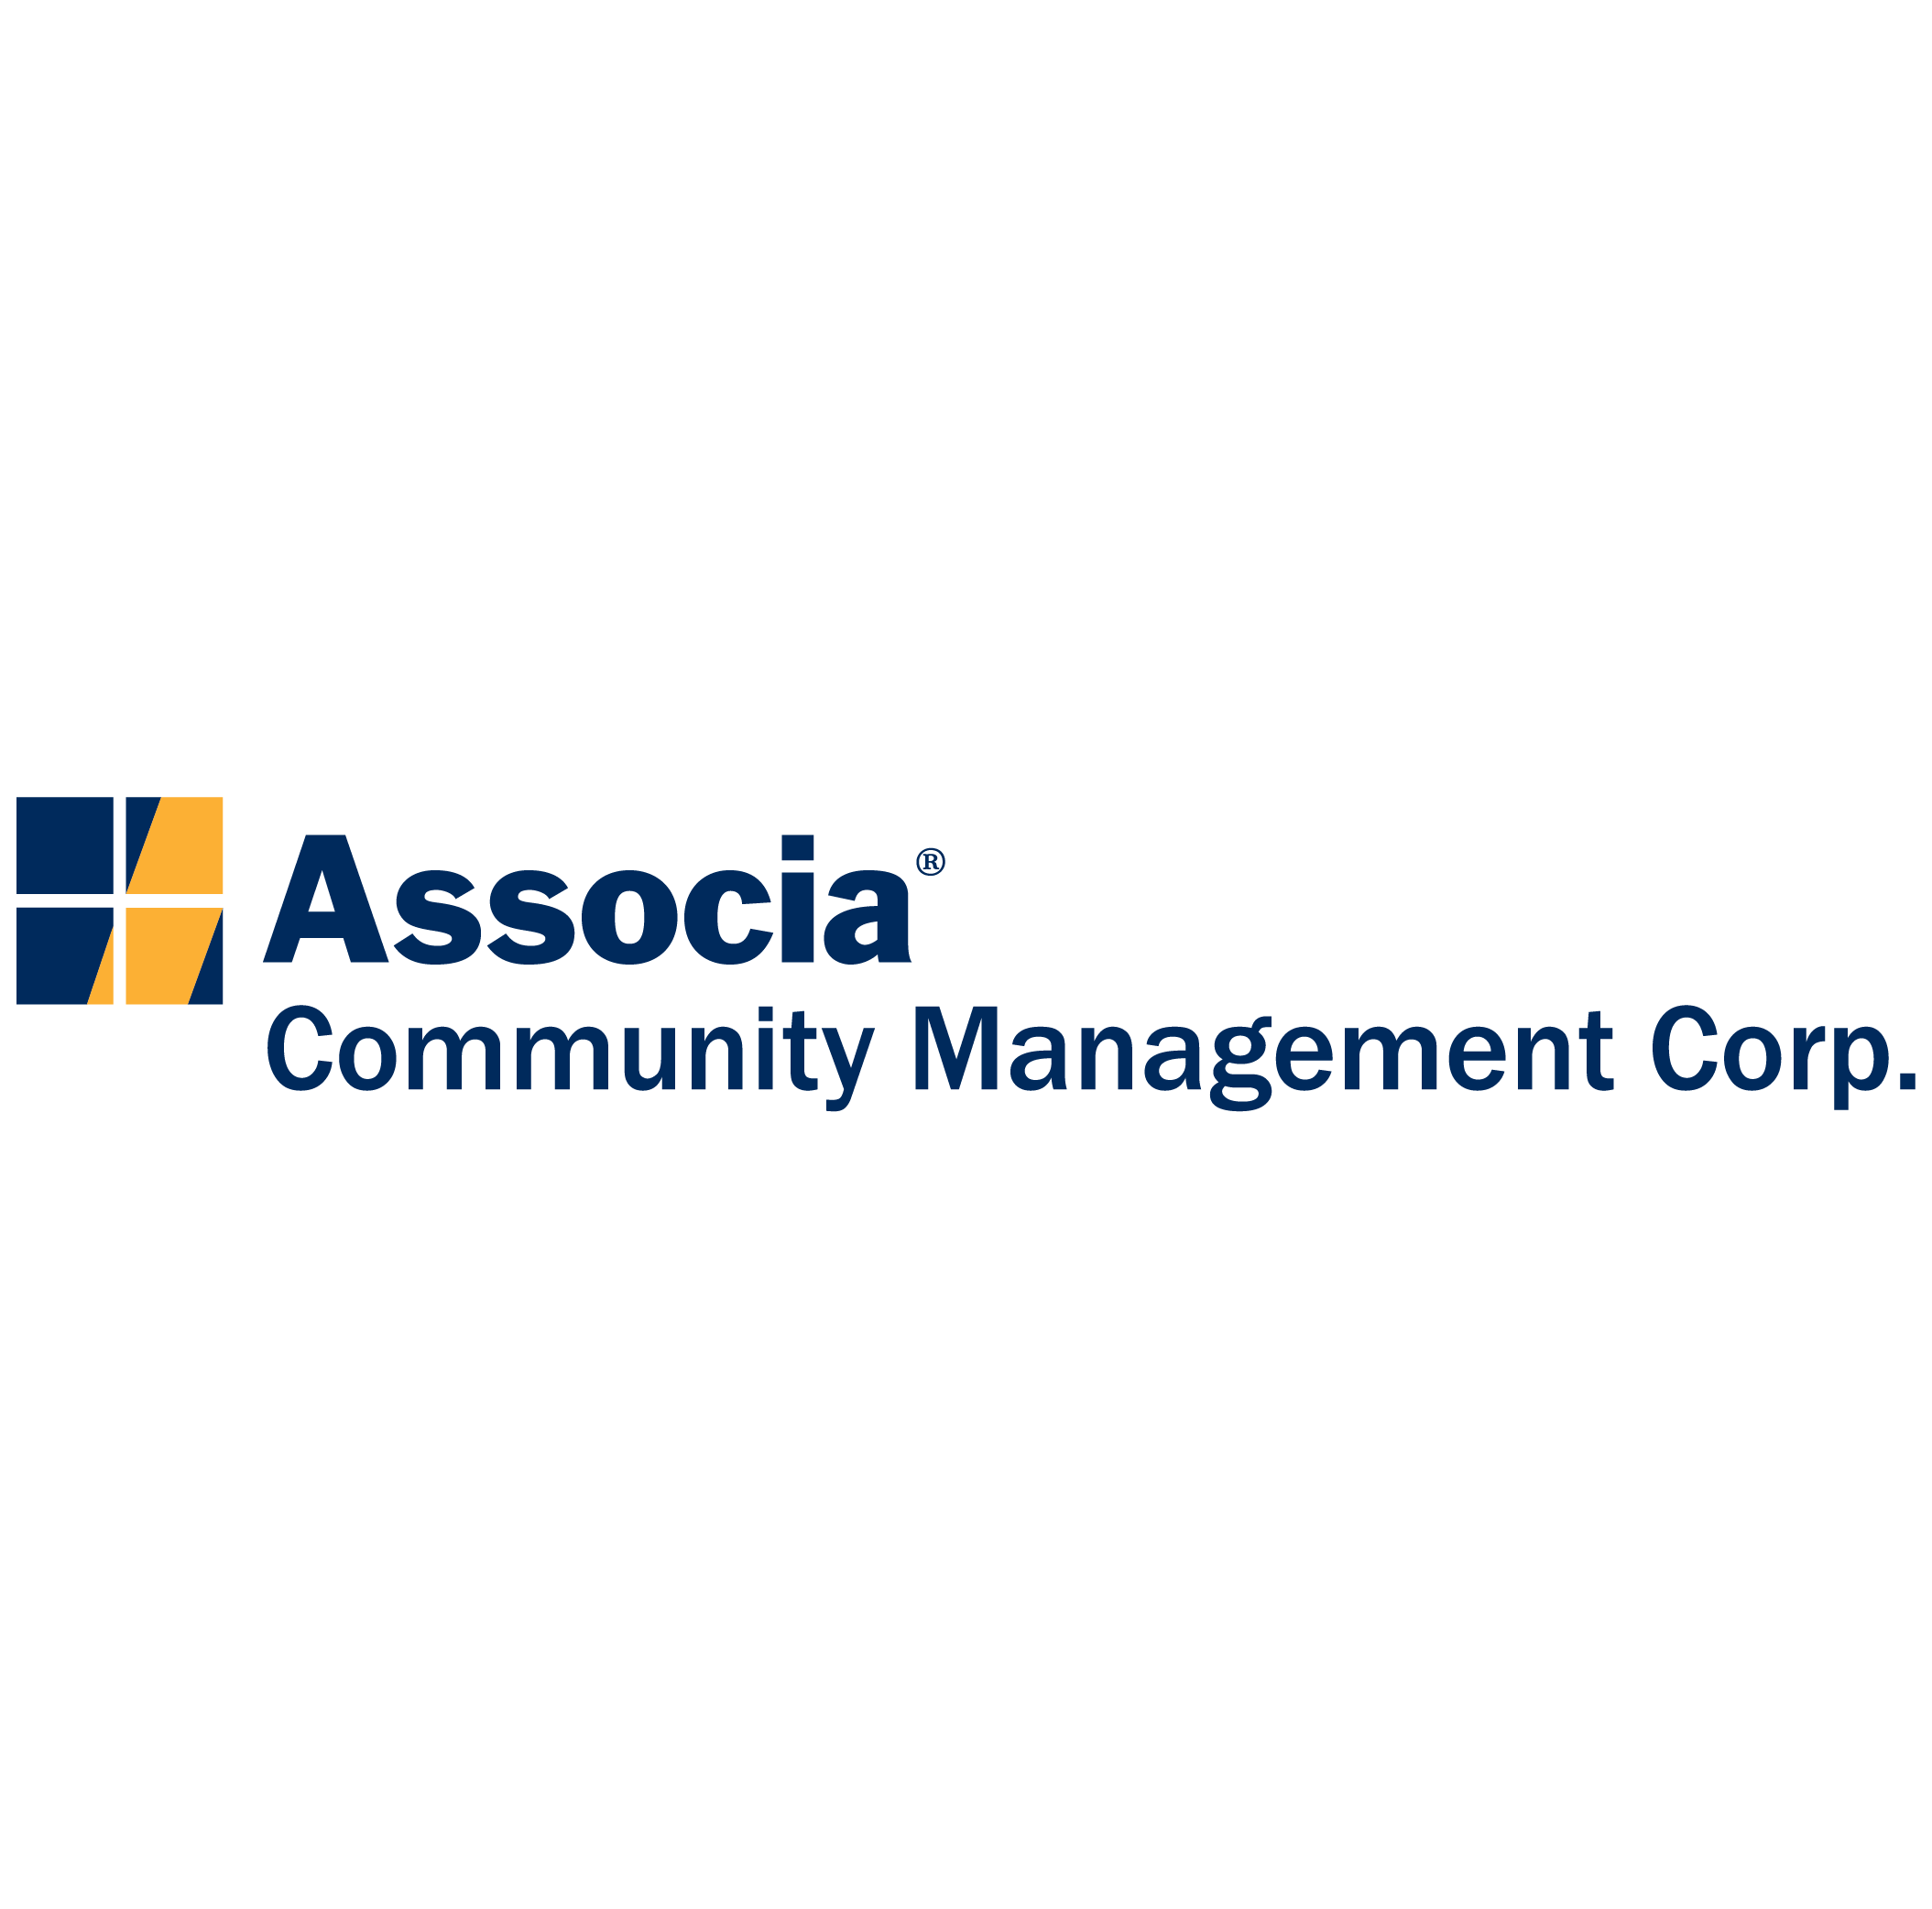 Associa-Community Management Corp., AAMC